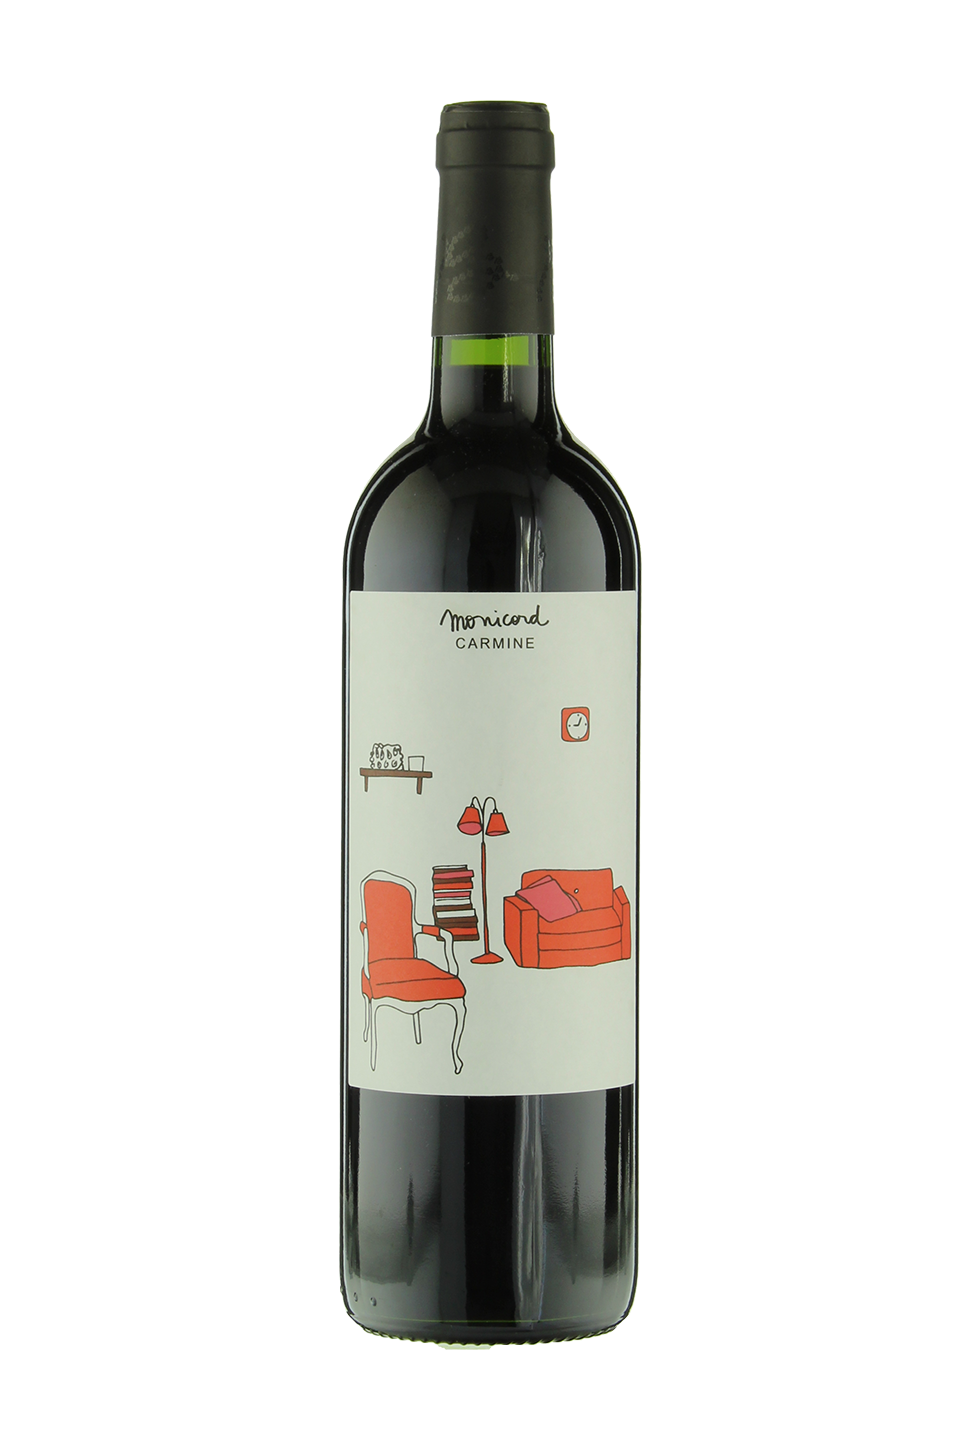 Carmine de Monicord Bordeaux Superieur